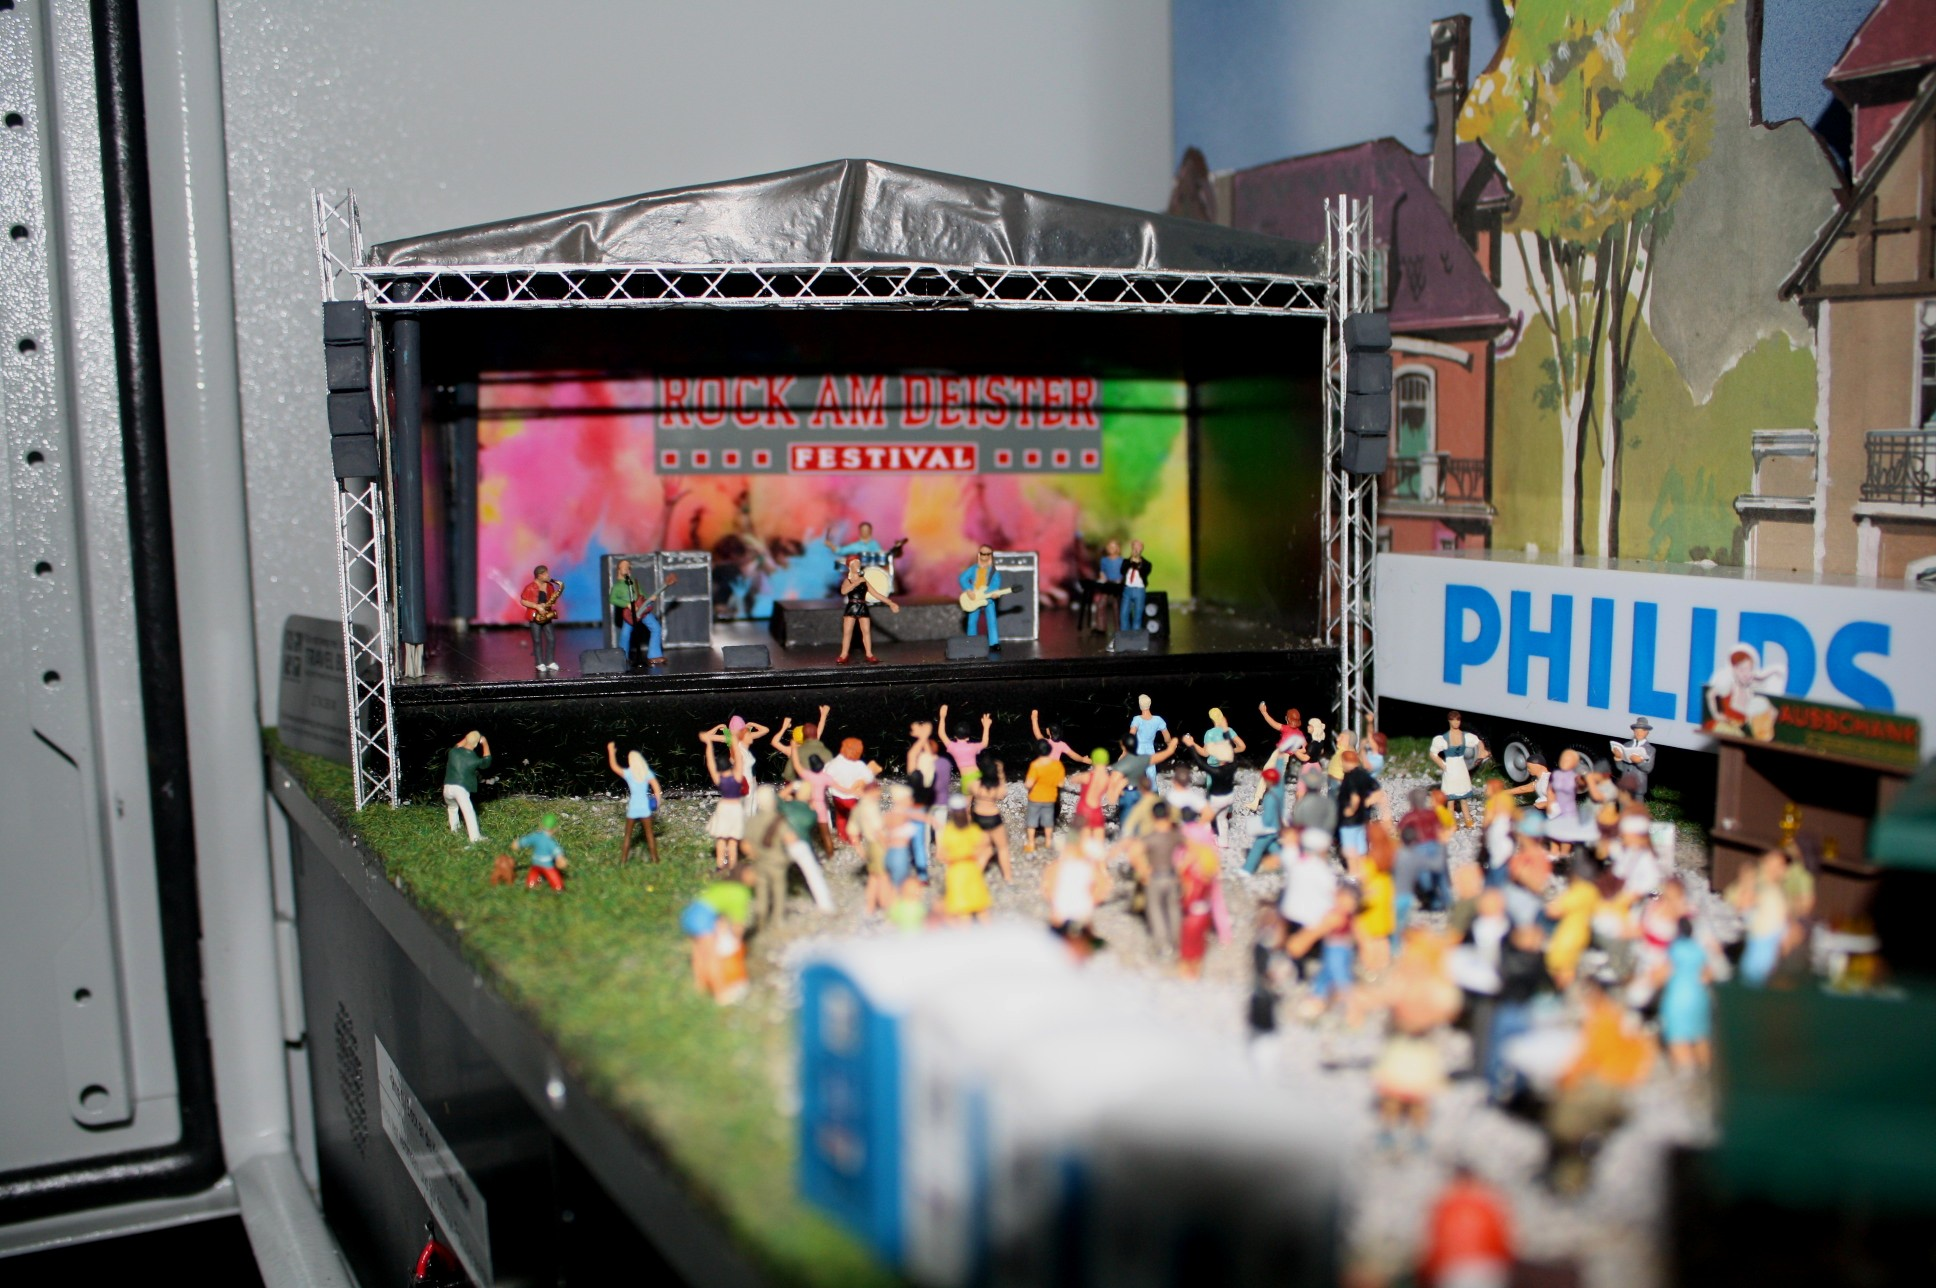 Enjoy a nice concert after you earn your smiley. Photo courtesy of Geoheimnisträger